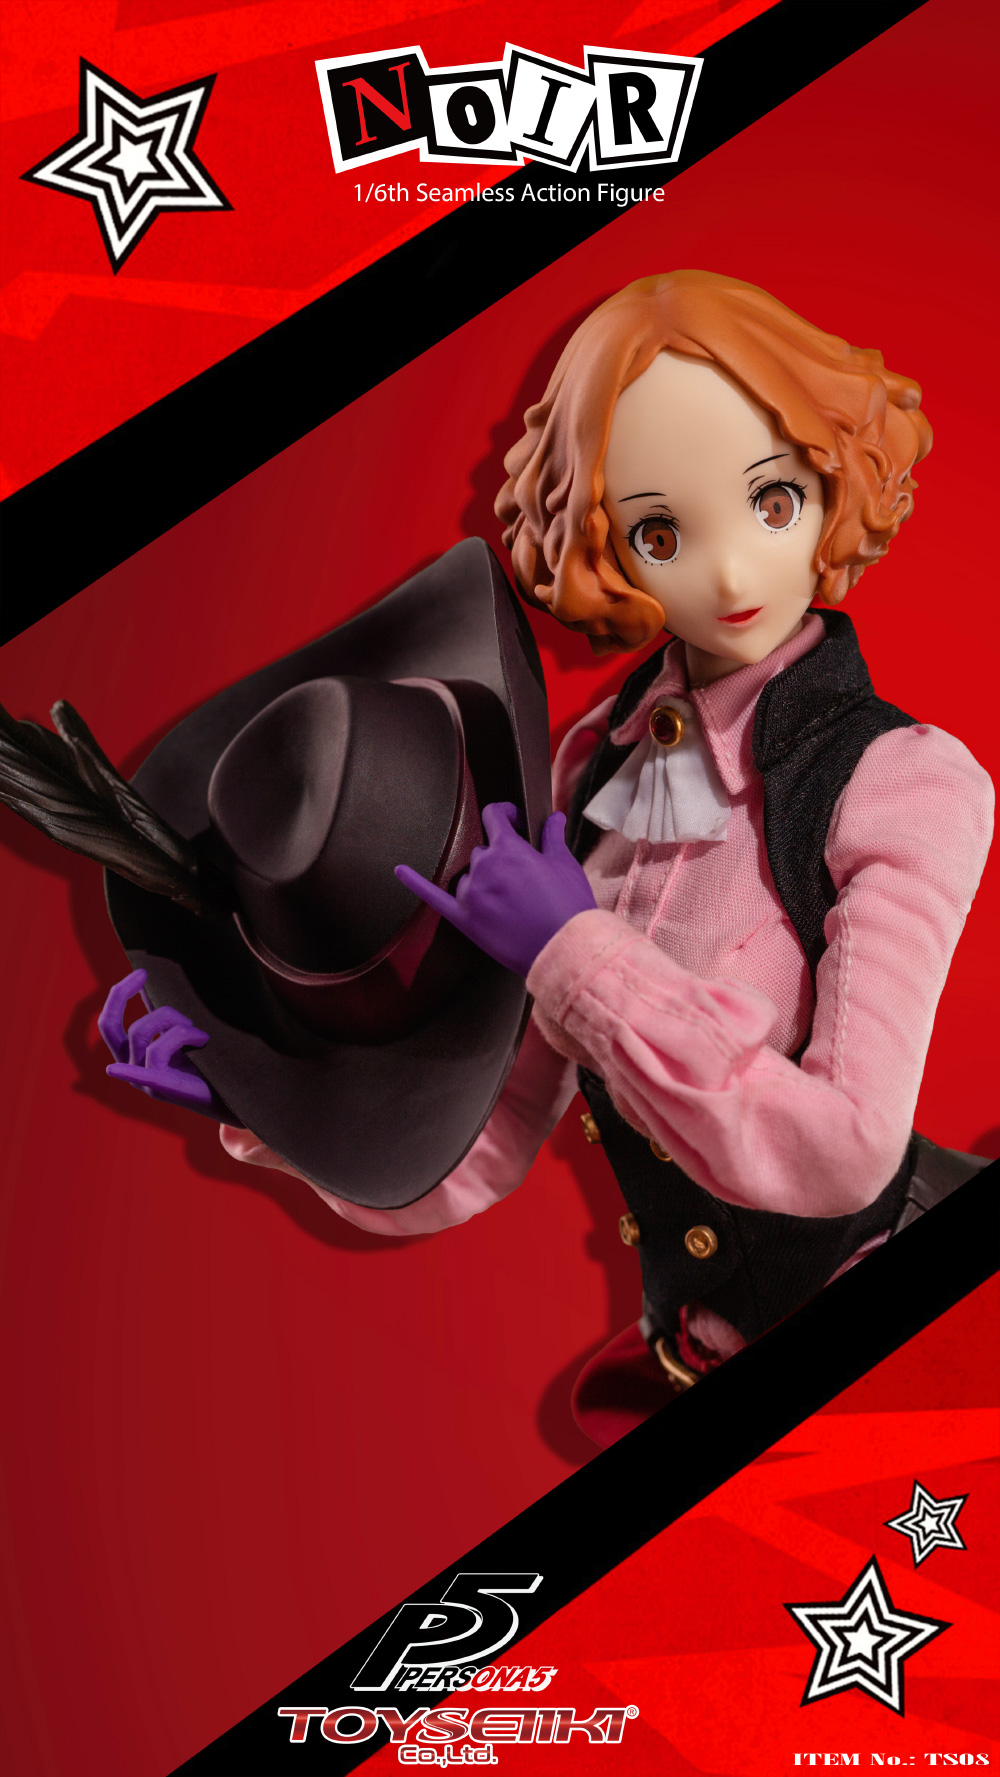 female - NEW PRODUCT: TOYSEIIKI: 1/6 Persona 5/PERSONA 5 - NOIR Movable TS08# 01105812